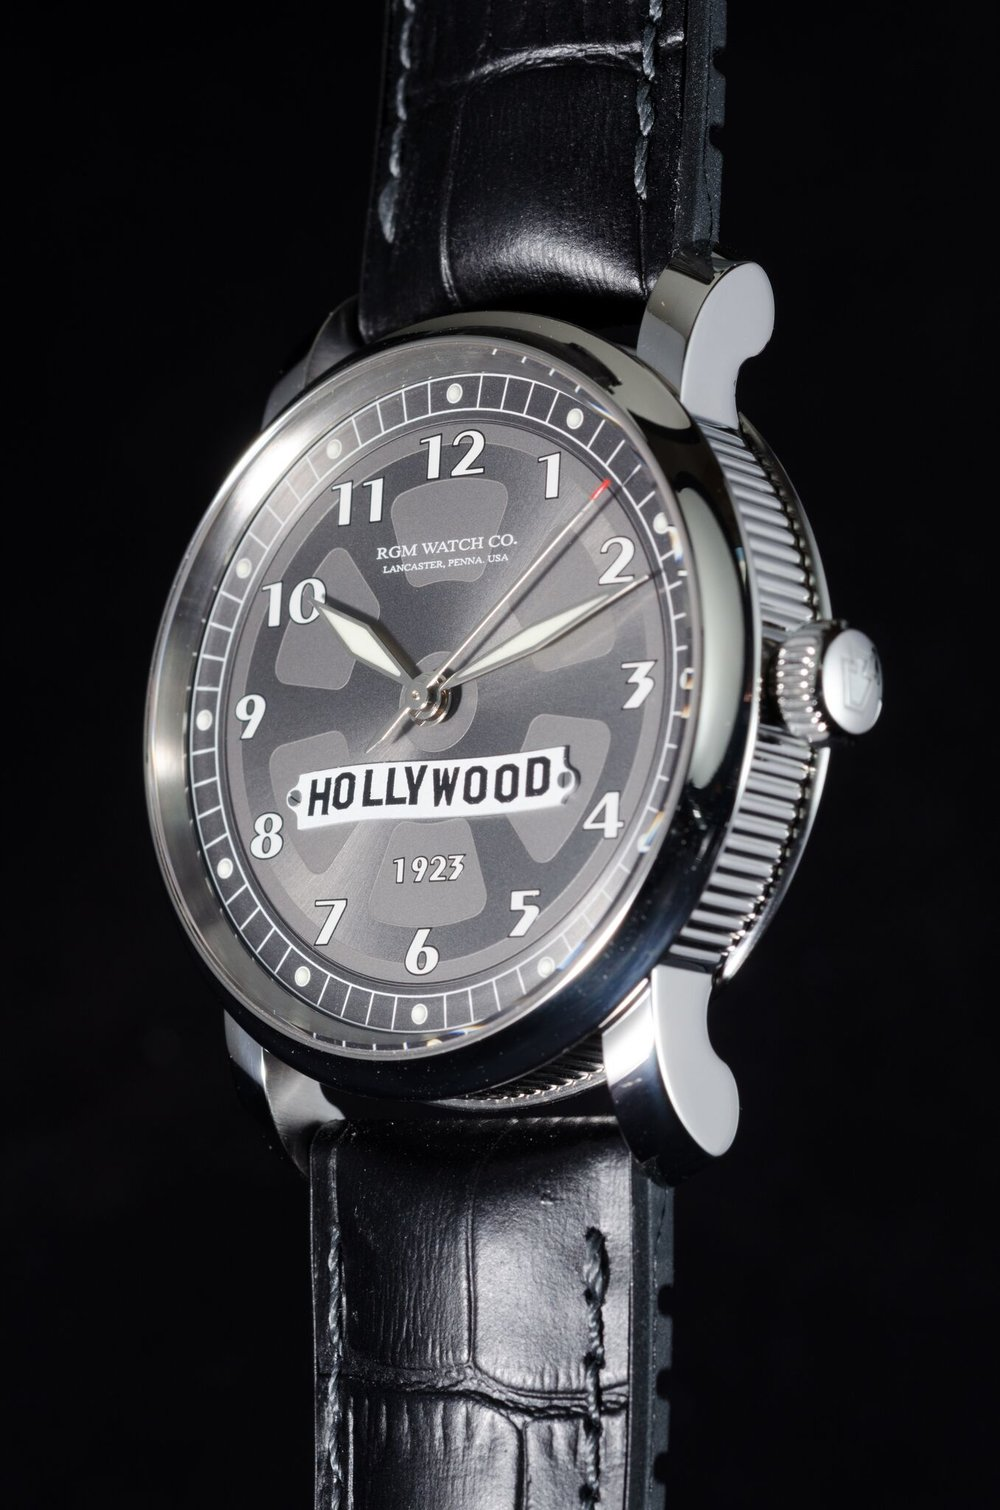 customer hollywood rgm rgmblog that sign had they co we salvaged was from custom last for metal watches our restoration made watch bought of up the